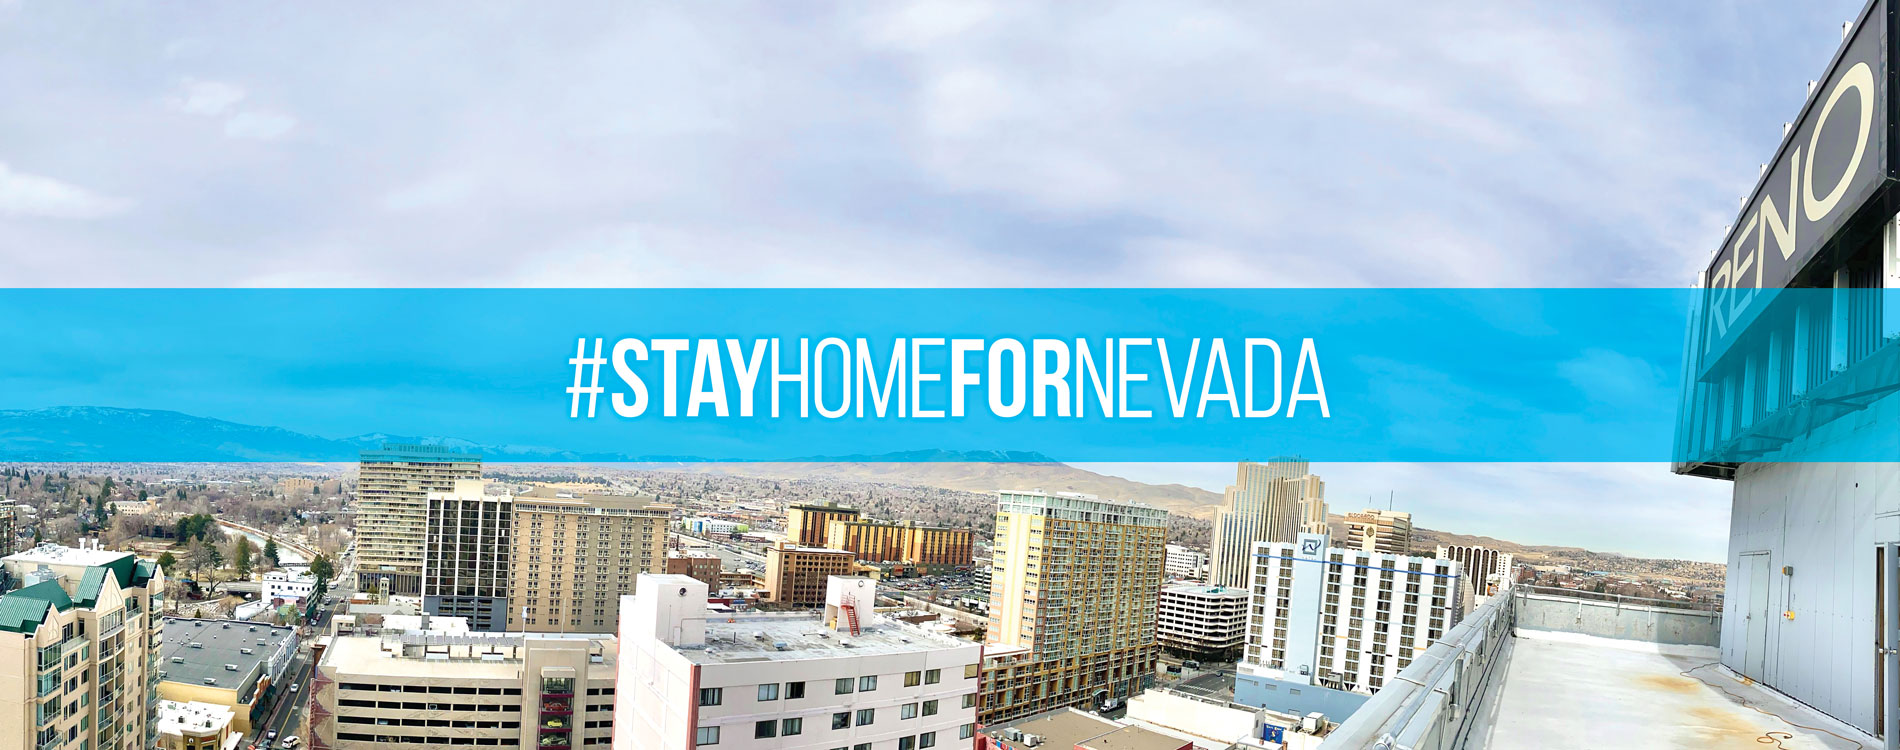 Skyline of Reno with #StayHomeForNevada